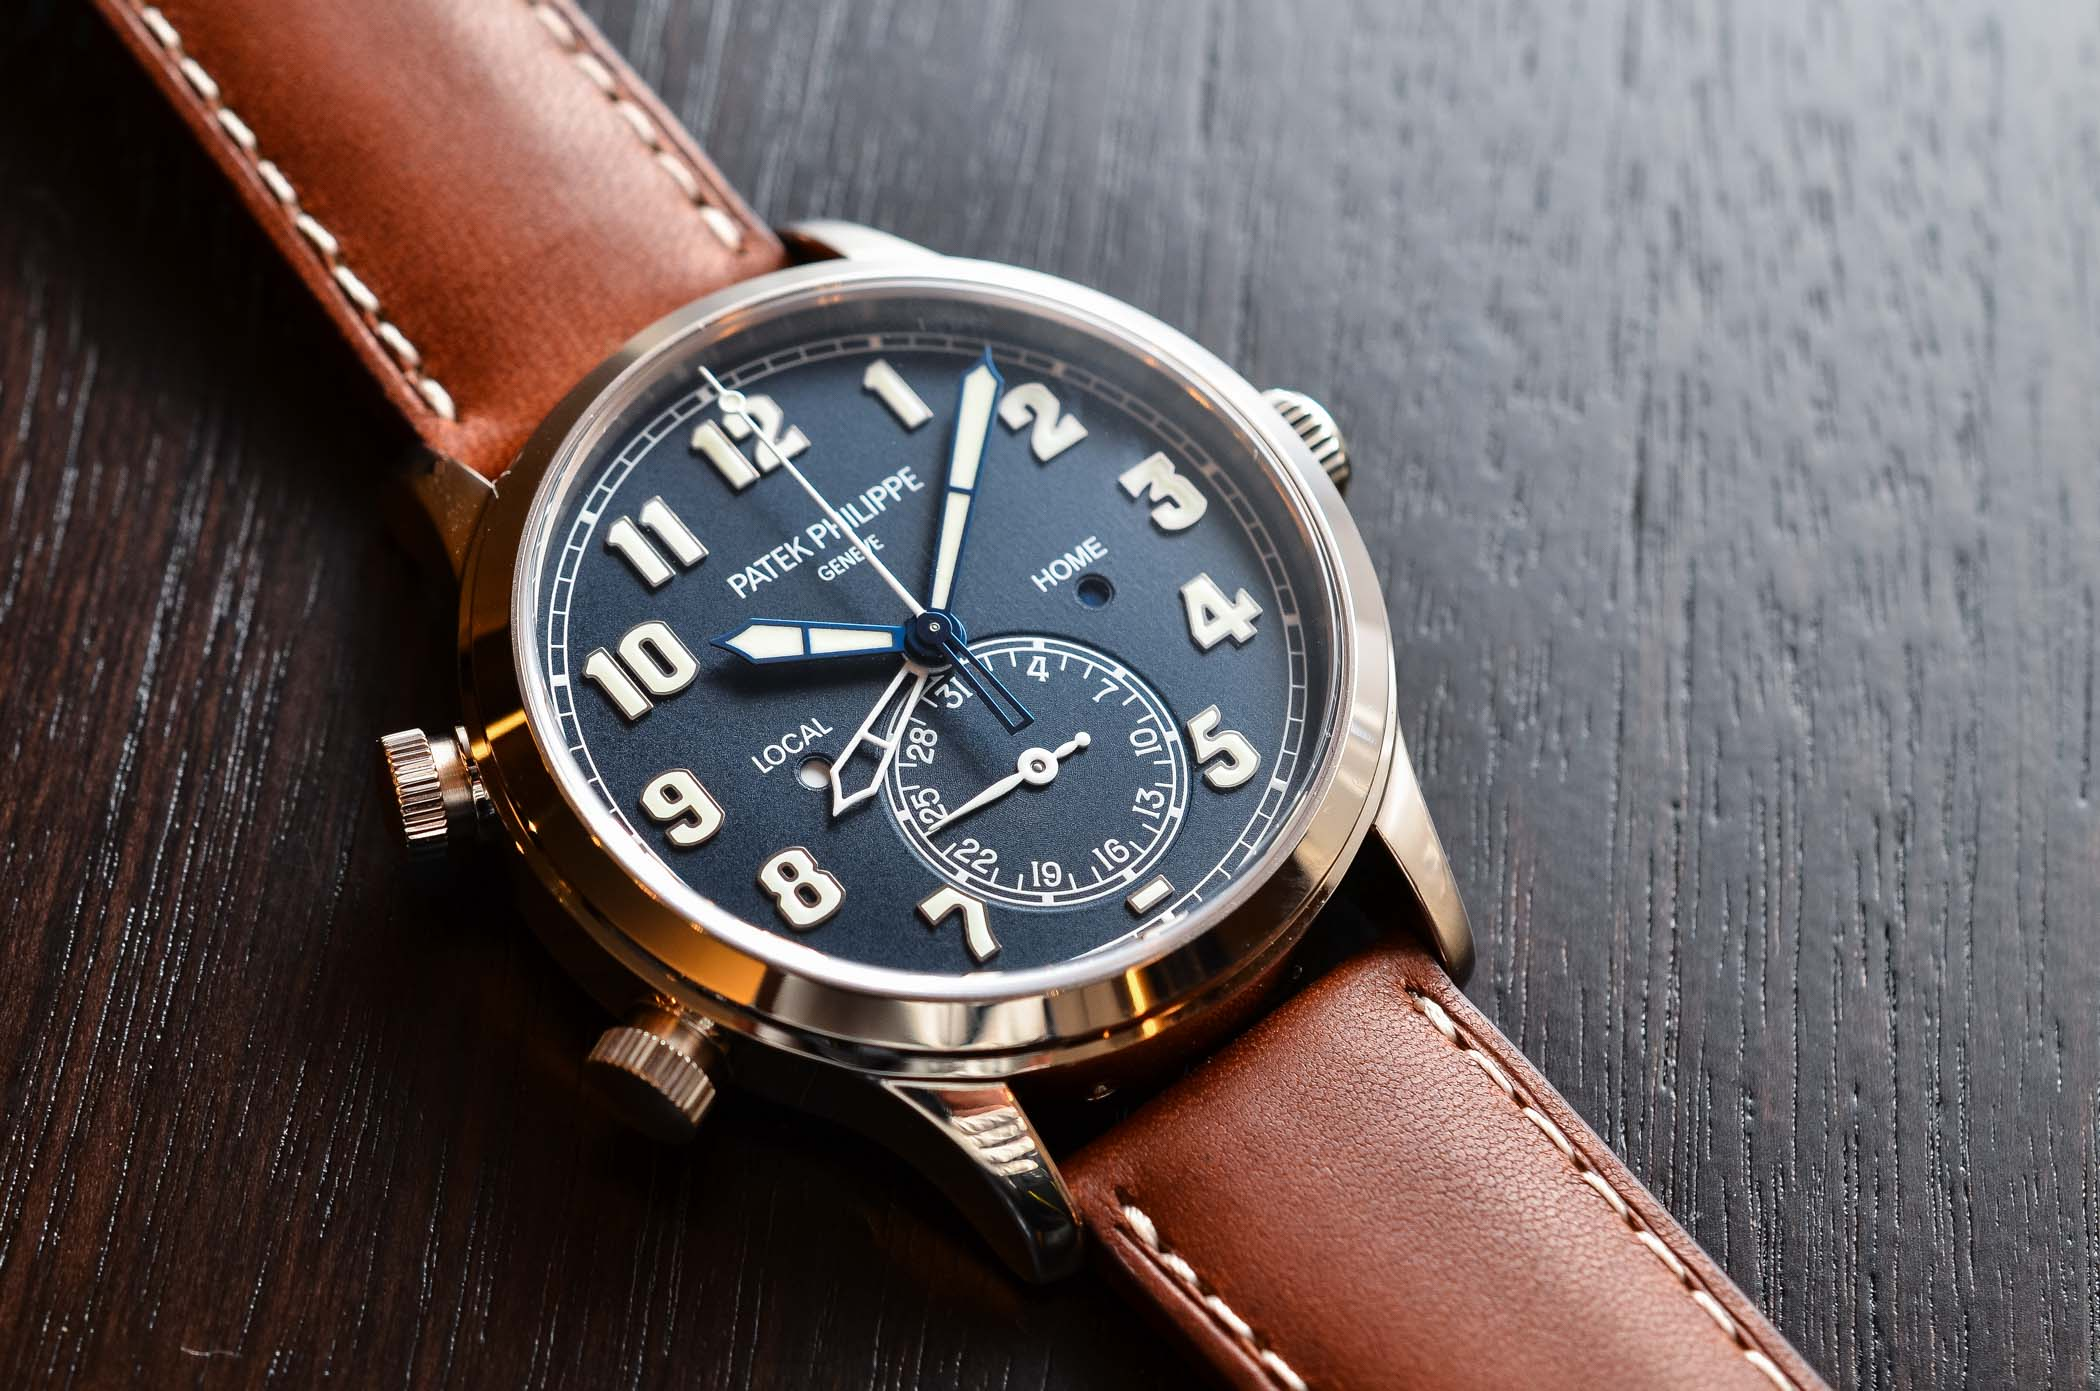 Patek Philippe Calatrava Pilot Travel Time 5524G White Gold